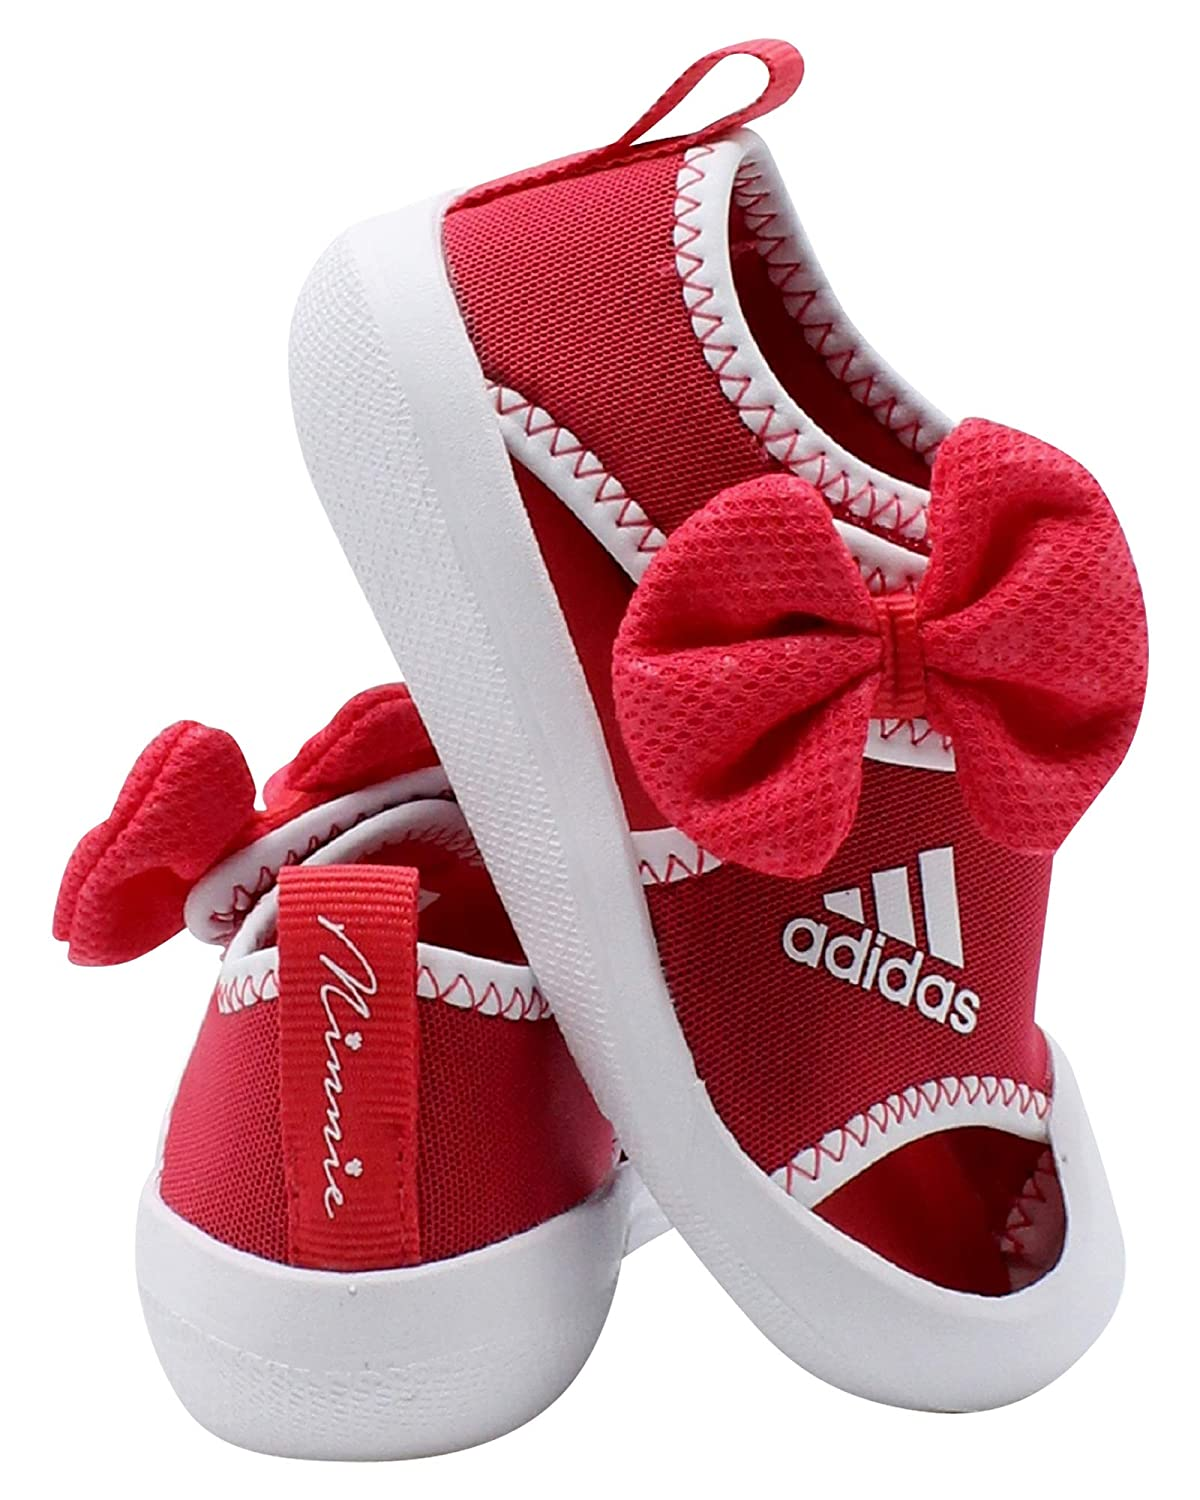 minnie mouse adidas Off 52% nutechproducts.in